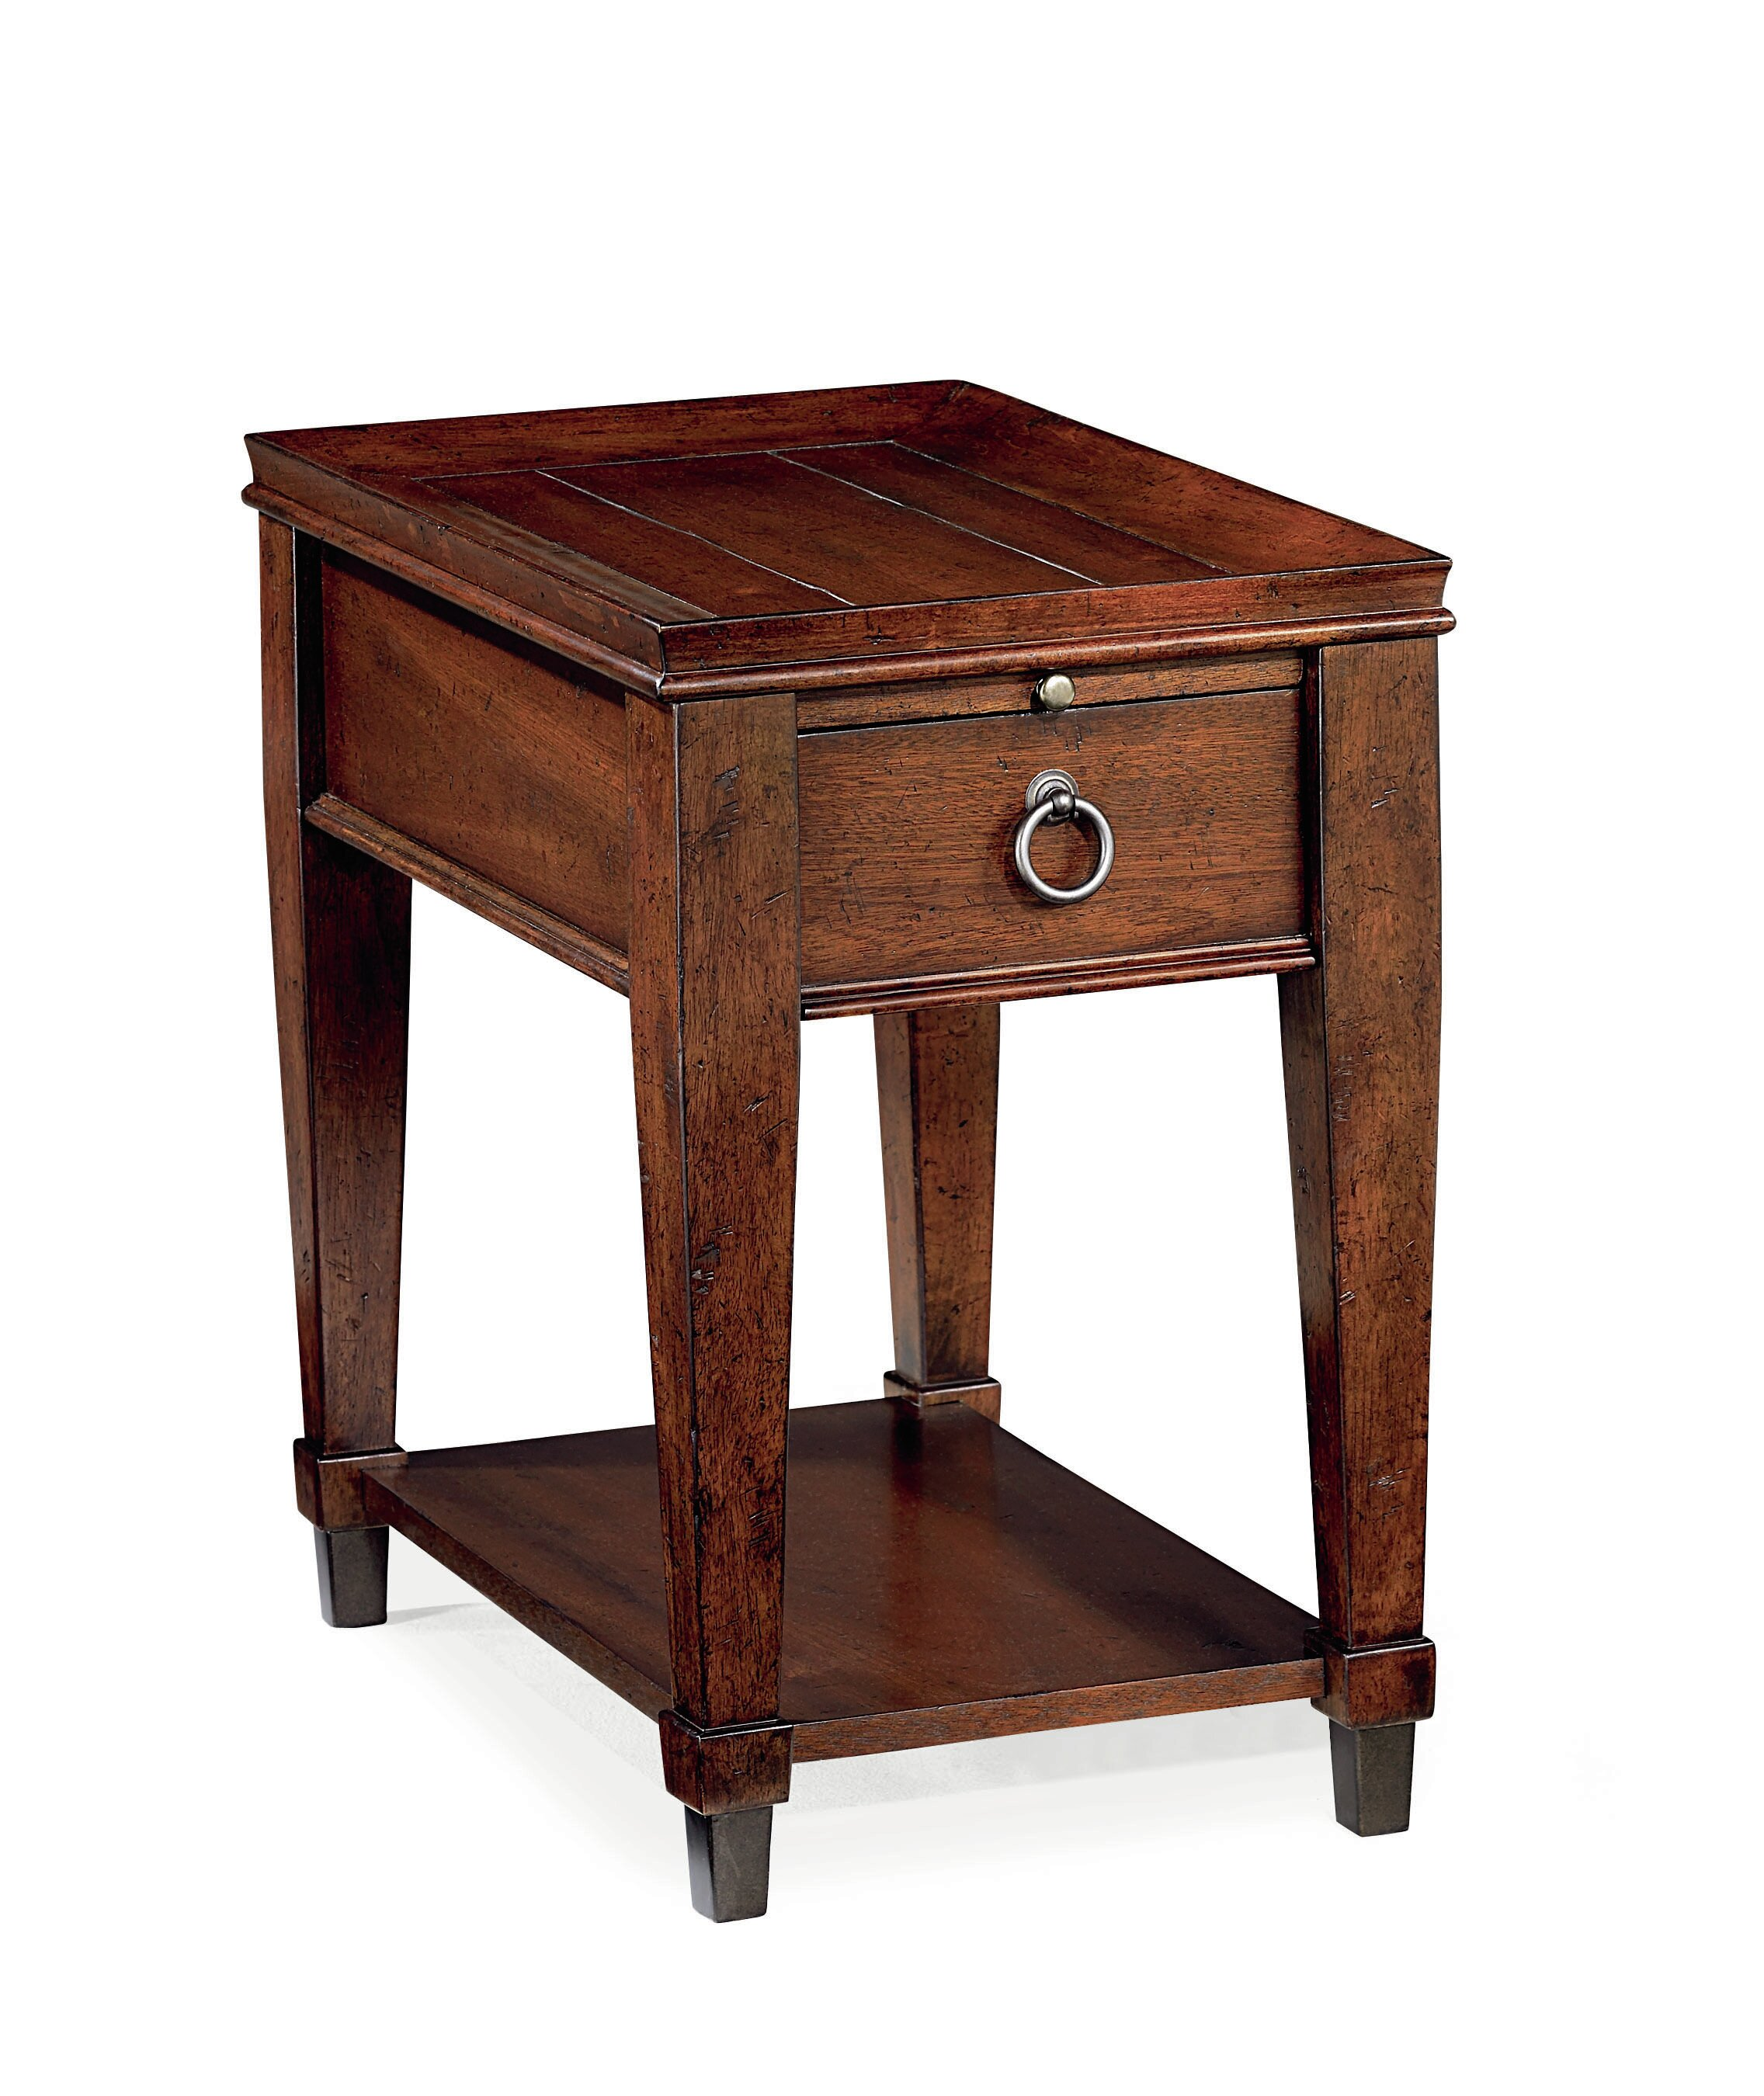 Beau Darby Home Co Fitzhugh End Table With Storage U0026 Reviews | Wayfair